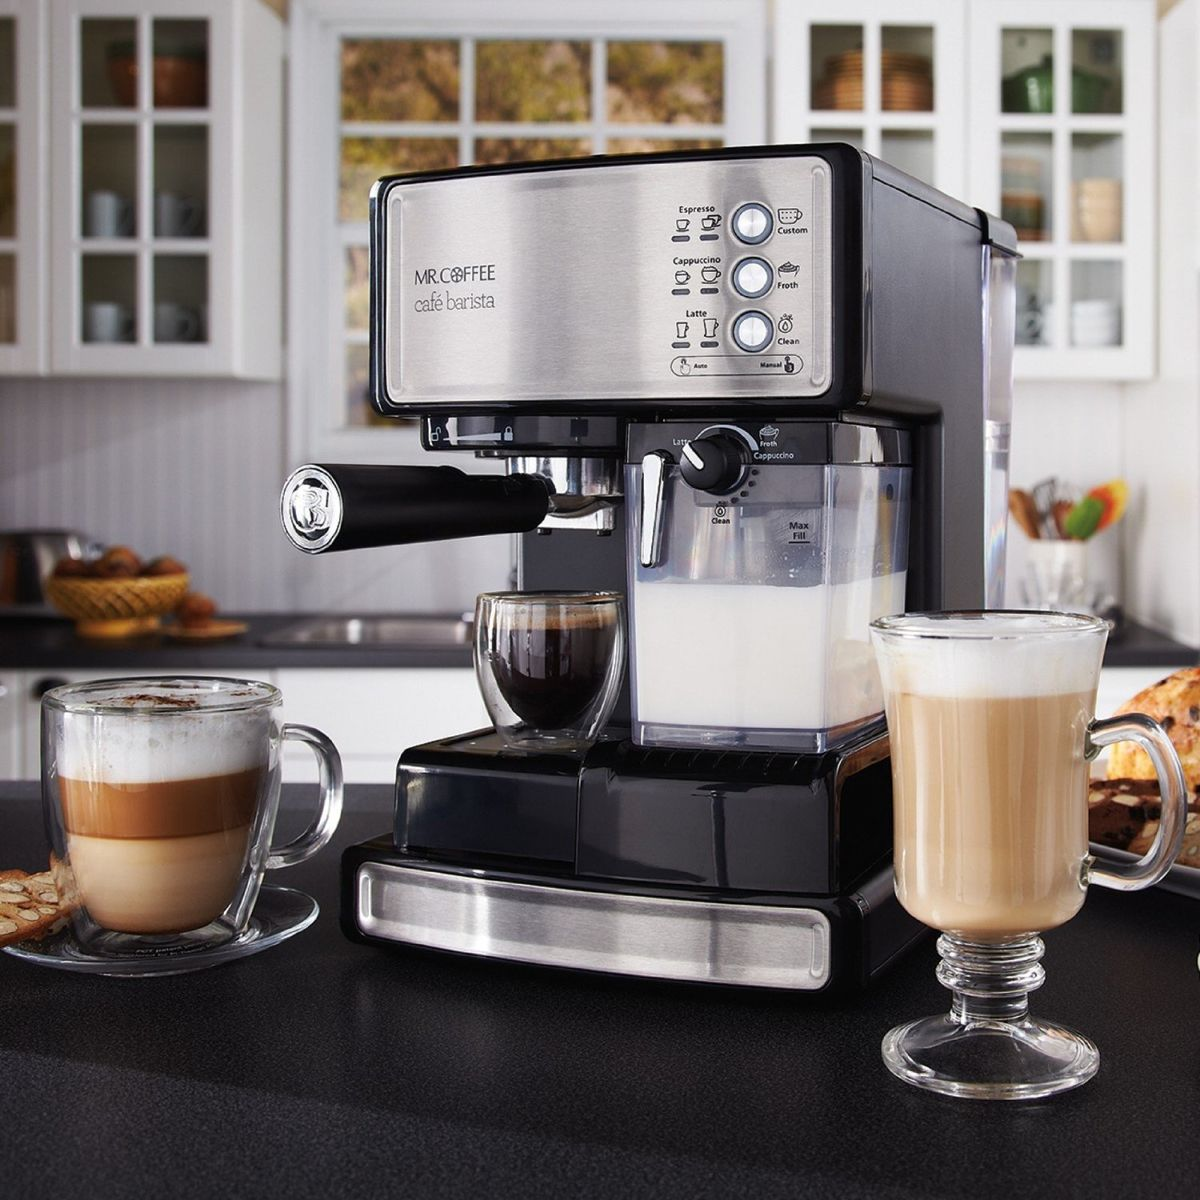 Headline for Best-Rated Inexpensive Espresso Machines For Home Use Under 200 Dollars - Reviews And Ratings